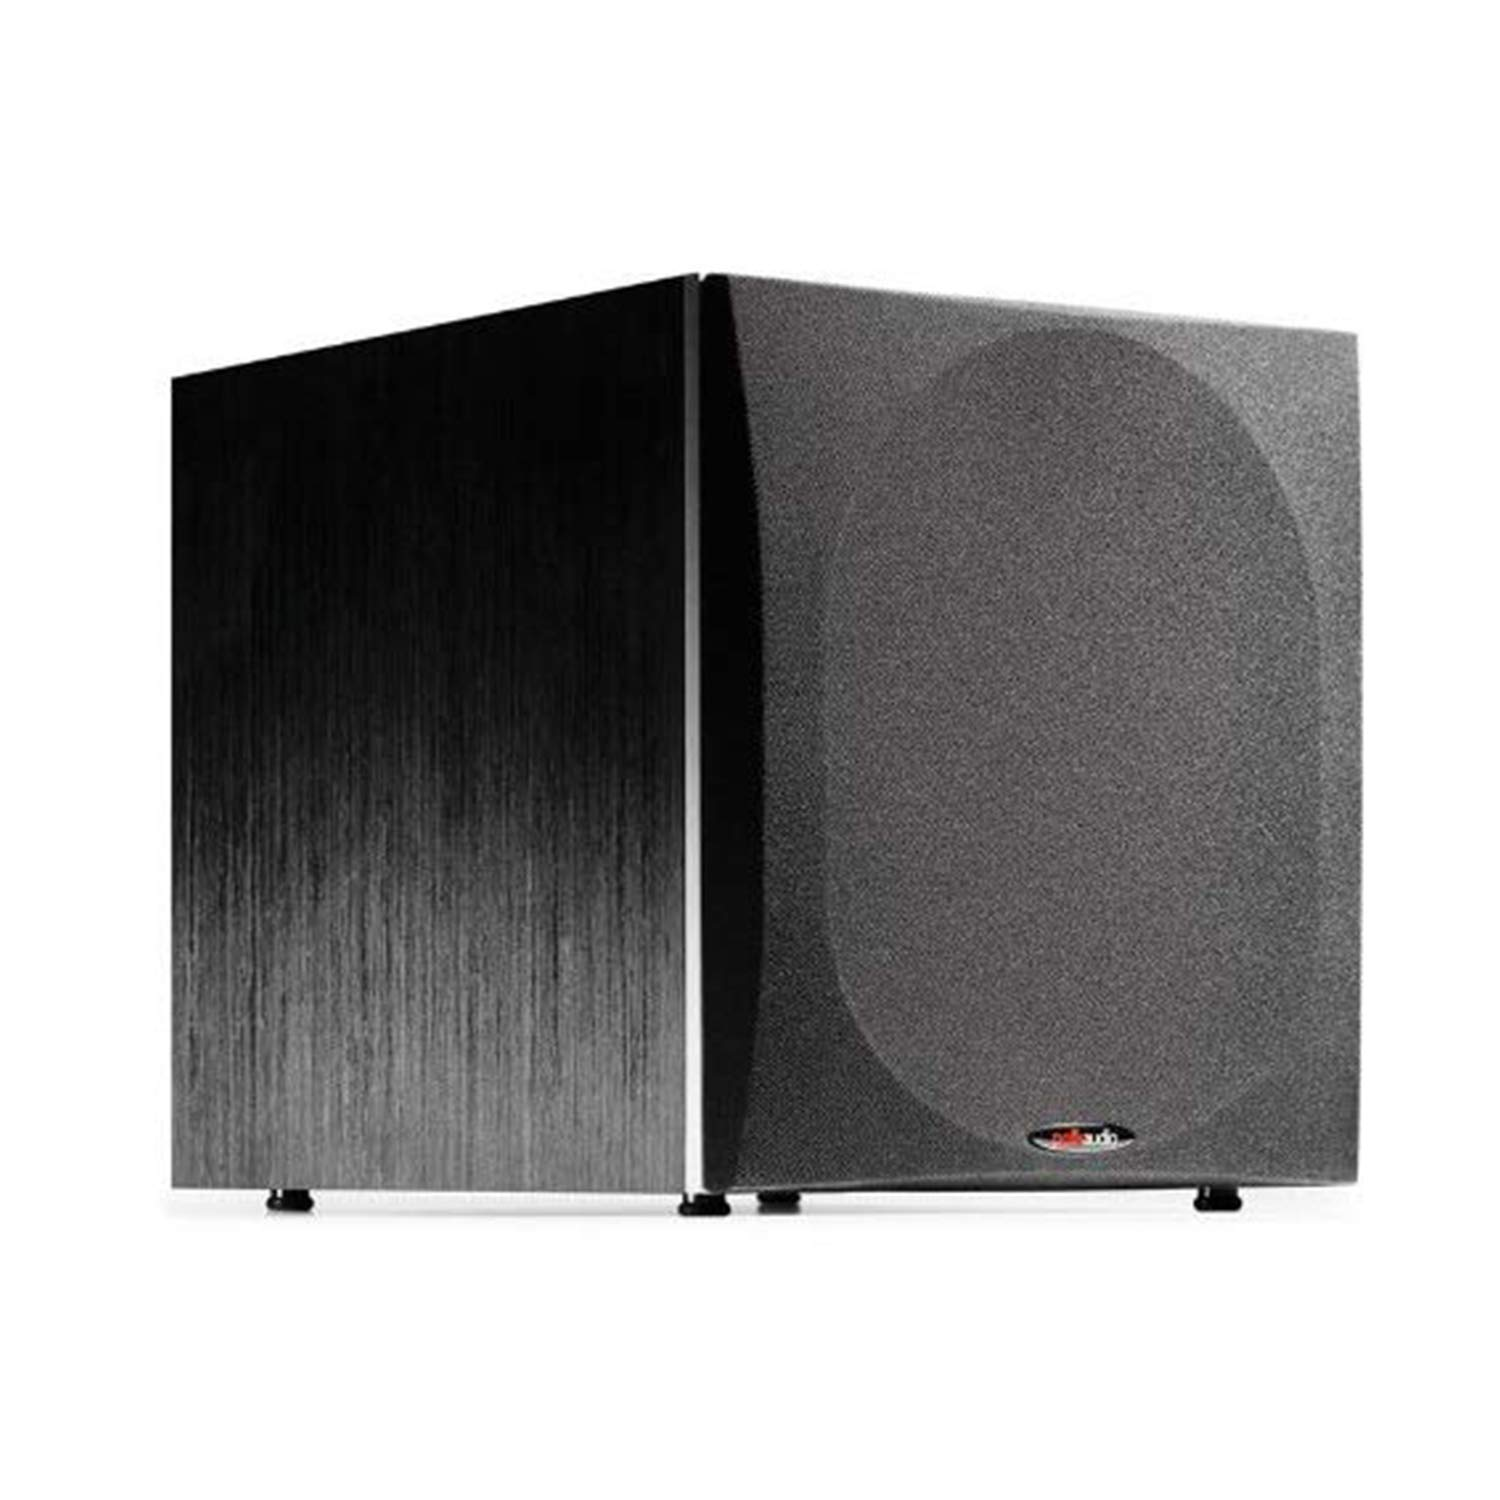 """Polk Audio PSW505 12"""" Powered Subwoofer - Deep Bass Impact & Distortion-Free Sound, Up to 460 Watts, Easy Integration with Home Theater Systems, BLACK"""